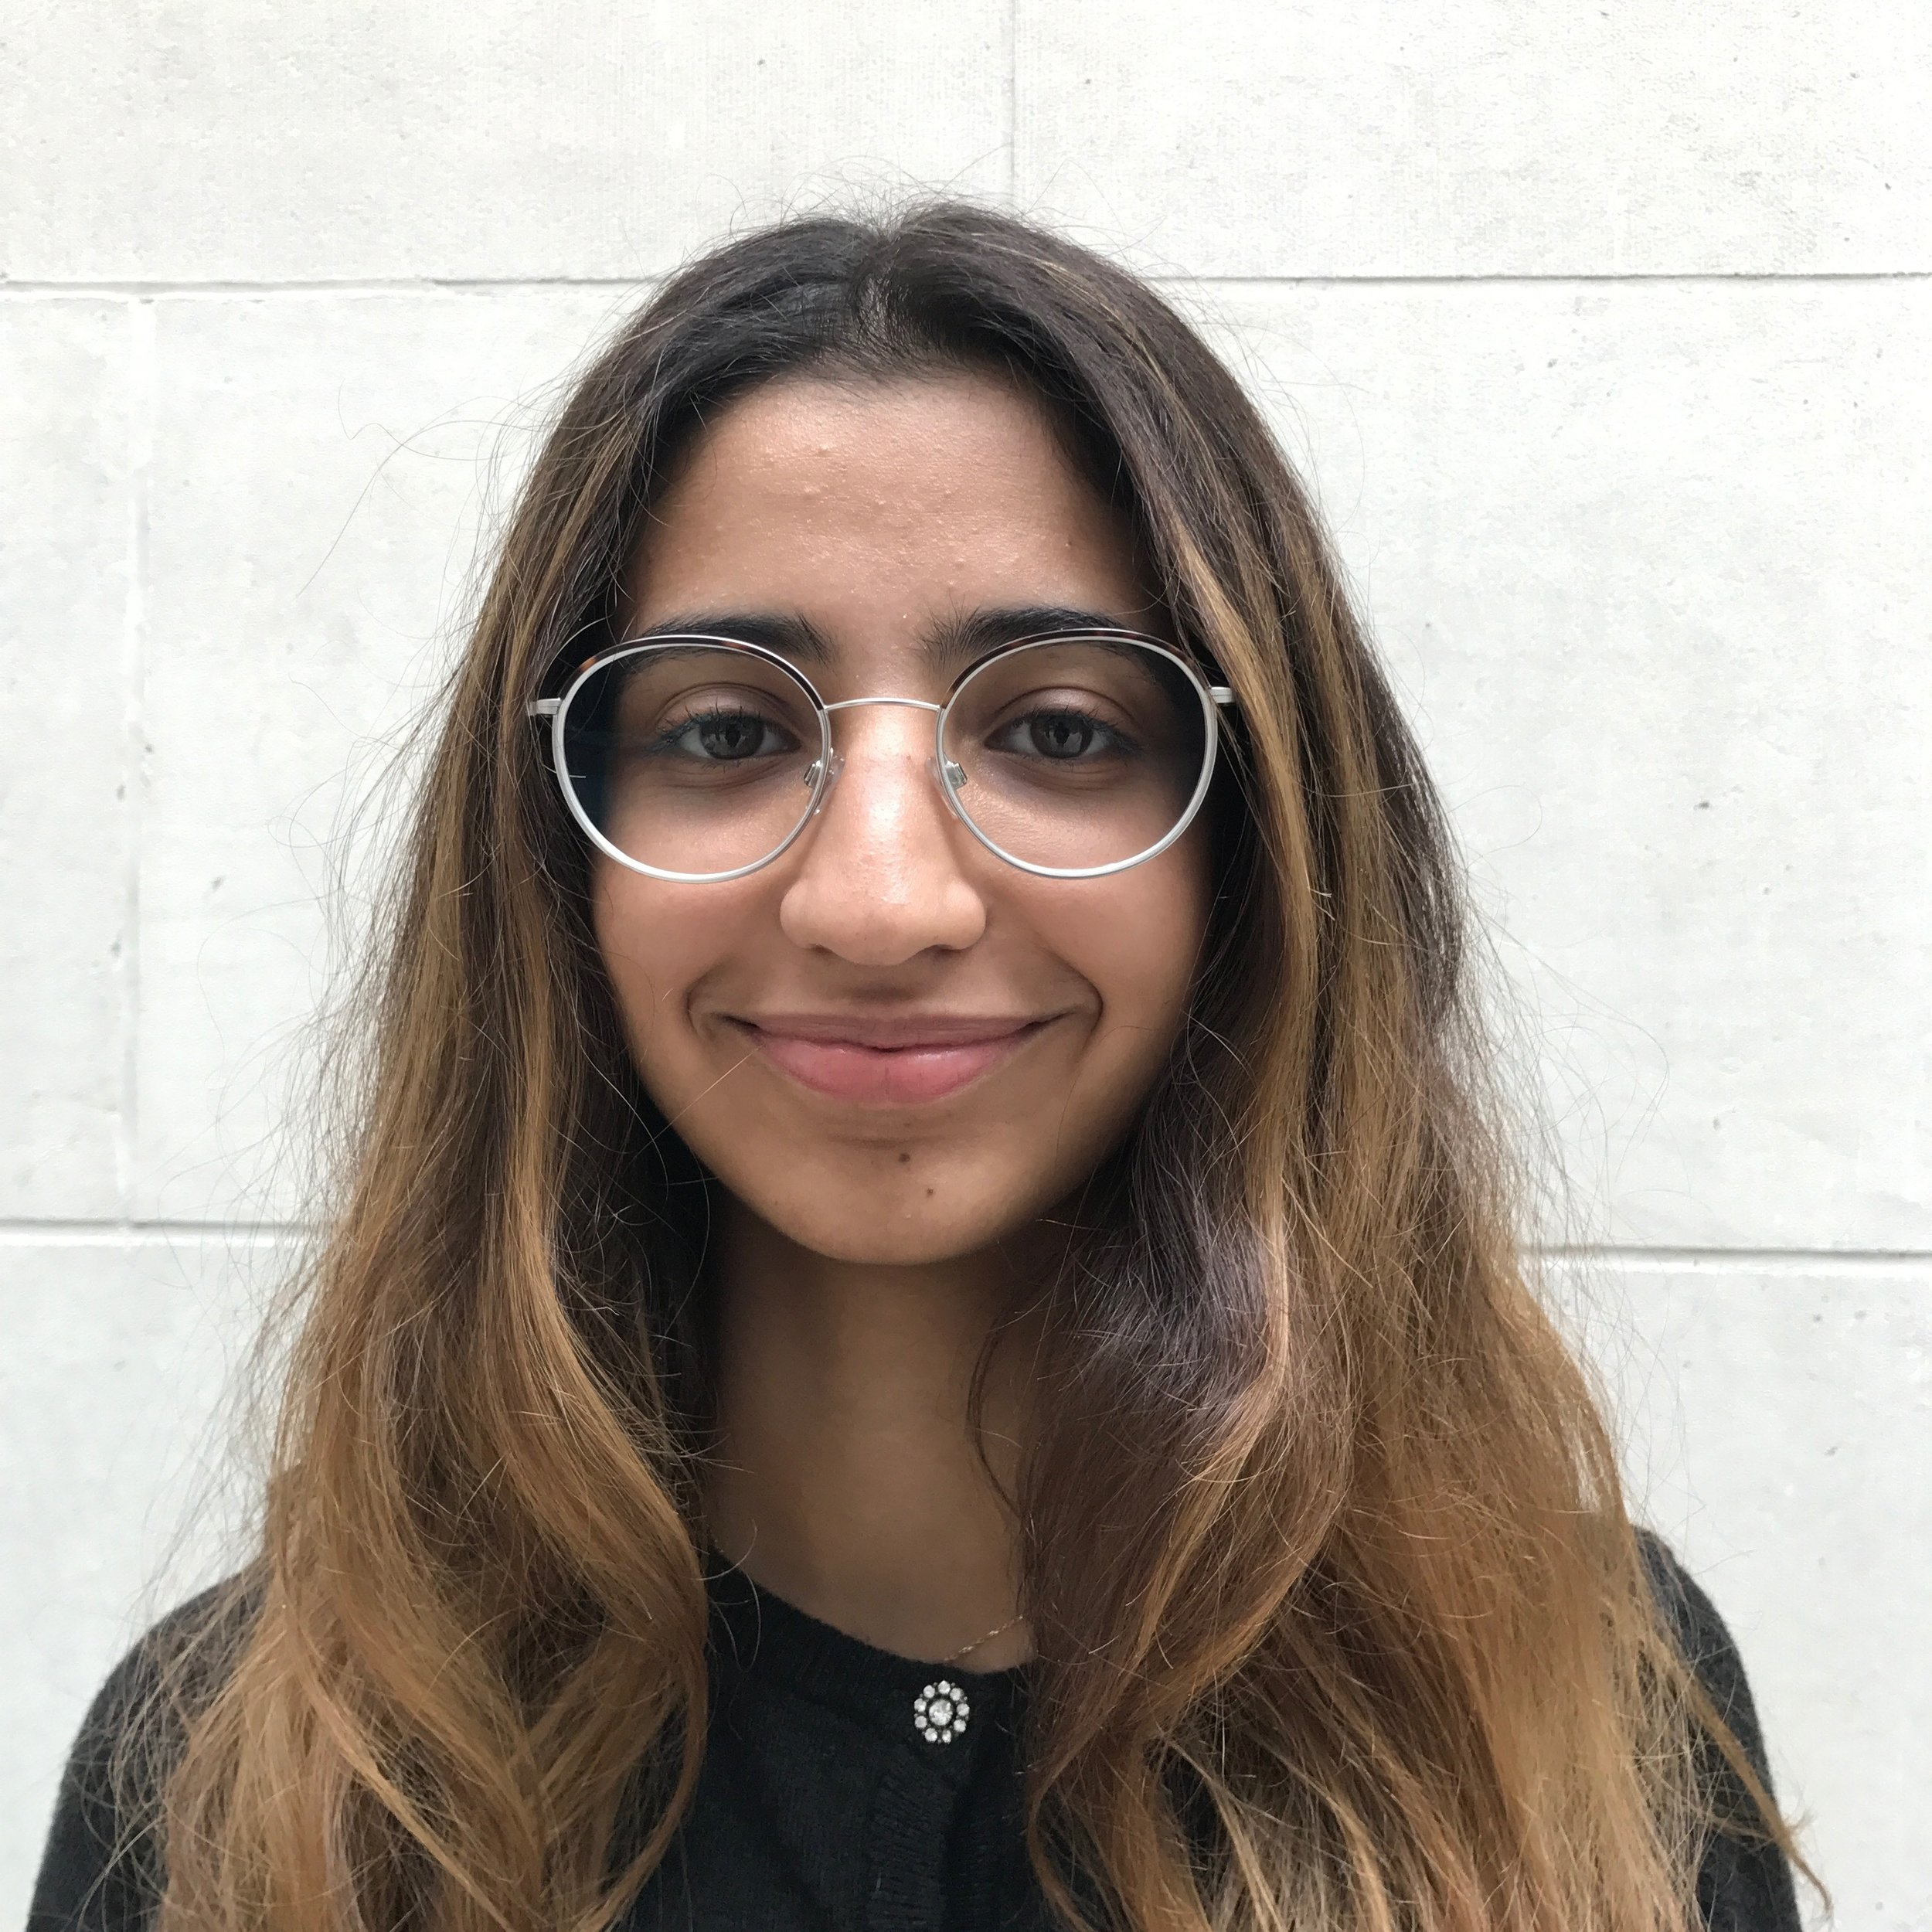 PRO BONO OFFICER - SARA ALQAMISH - I am an LLB finalist at SOAS and the present Pro Bono Officer of the SOAS Law Society.  Through this position, I hope to provide students with possibilities to develop their interests in working in pro-bono related opportunities or aspiring for human rights-related careers. As President of Lawyers without Borders Student Division at SOAS this year, I hope to use both of my roles to make liaising with the management more efficient. For instance, we are currently working on setting up a Law & Innovation Clinic. We also have a number of potential events to hold, including a talk by lawyers from the Freedom of Torture organization in London. At SOAS, I am also involved as the Senior Editor of the SOAS Law Journal and helped start up the SOAS Francophile Society.